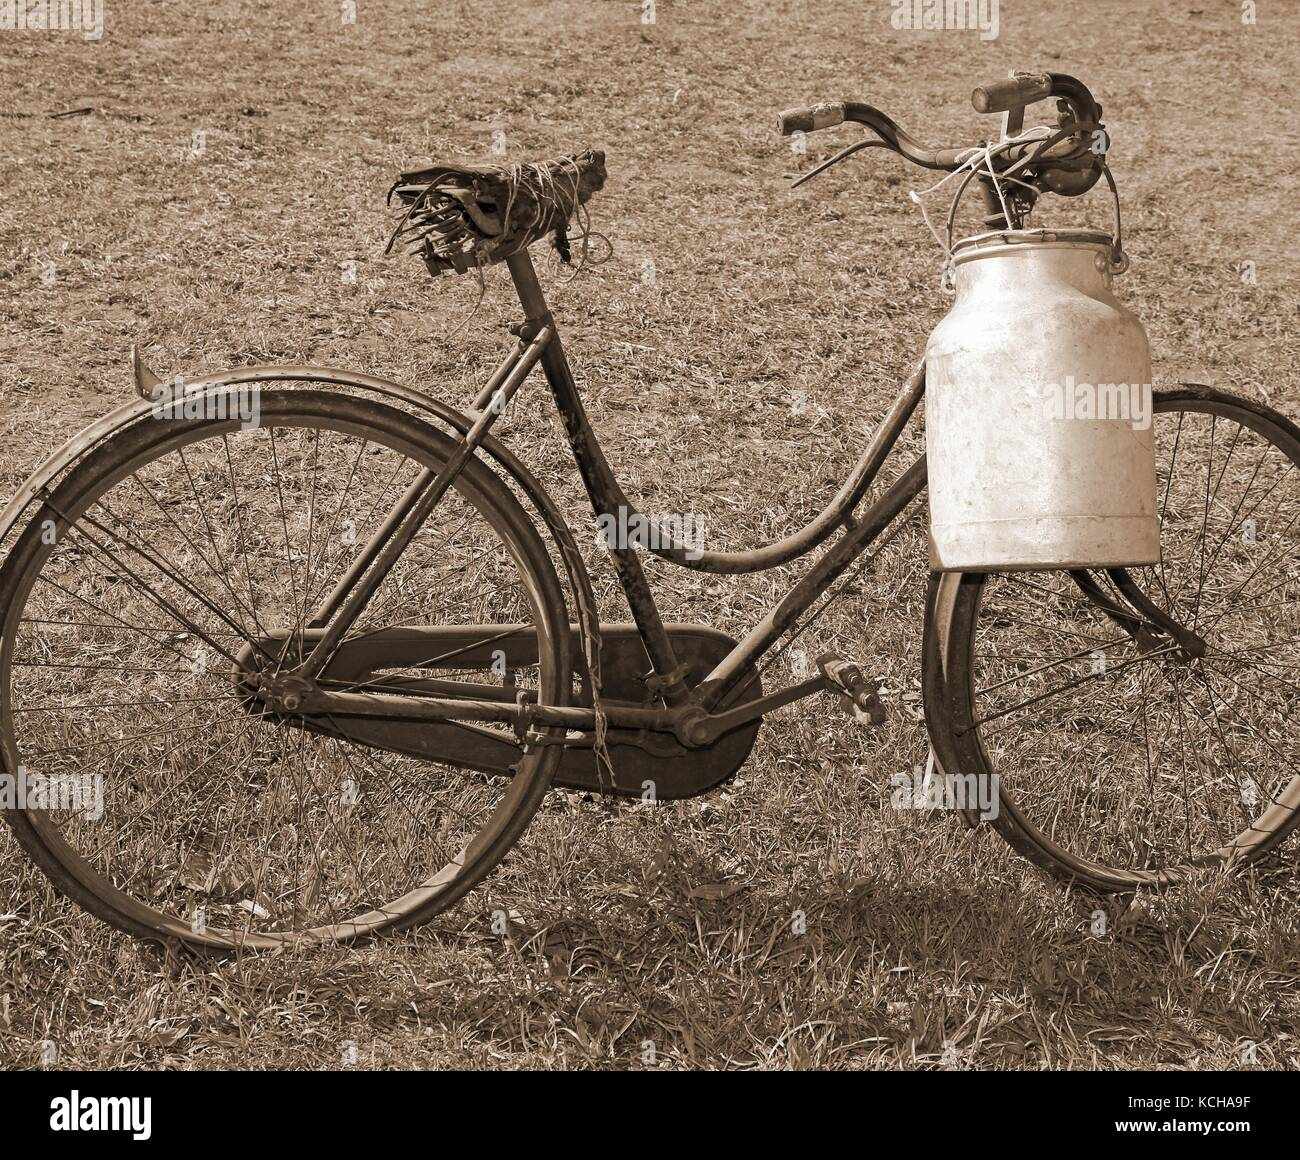 ancient milking bike with aluminum bin for milk transport and speia effect - Stock Image